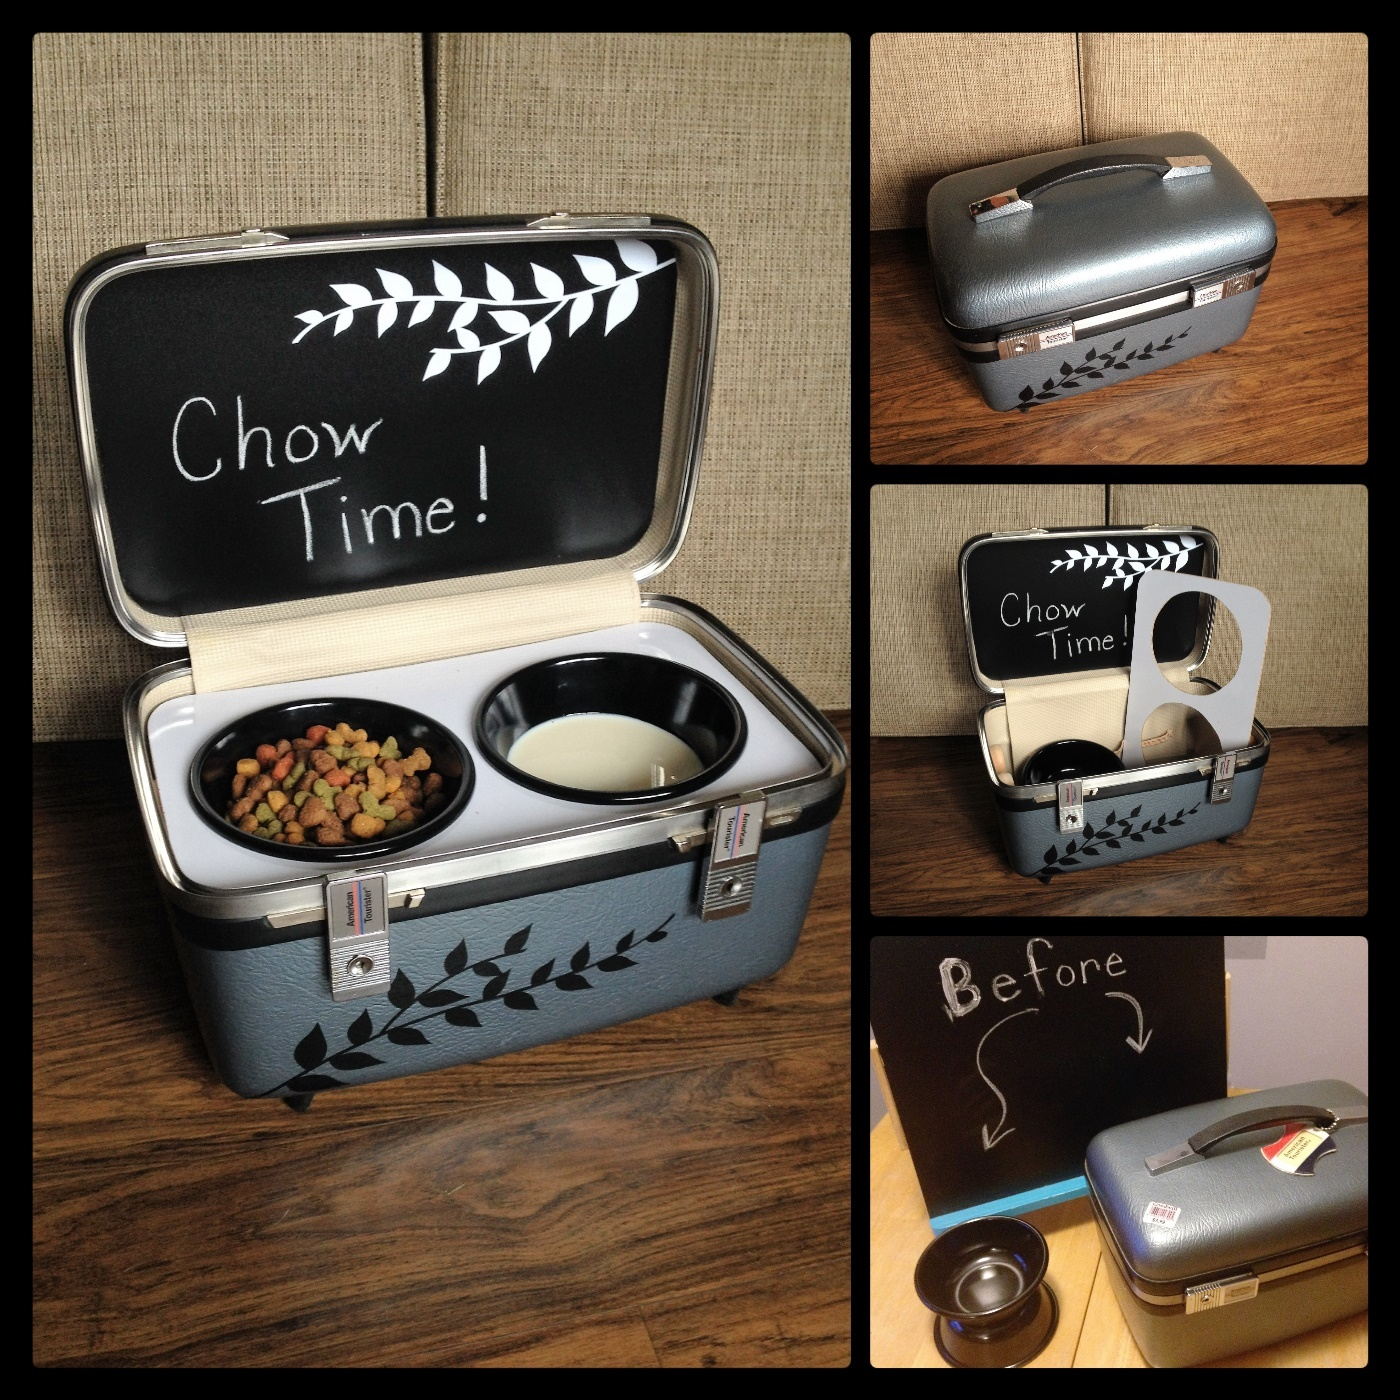 Goodwill Ultimate Upcycling Contest Winner - Jody M. Portable Feeding Station